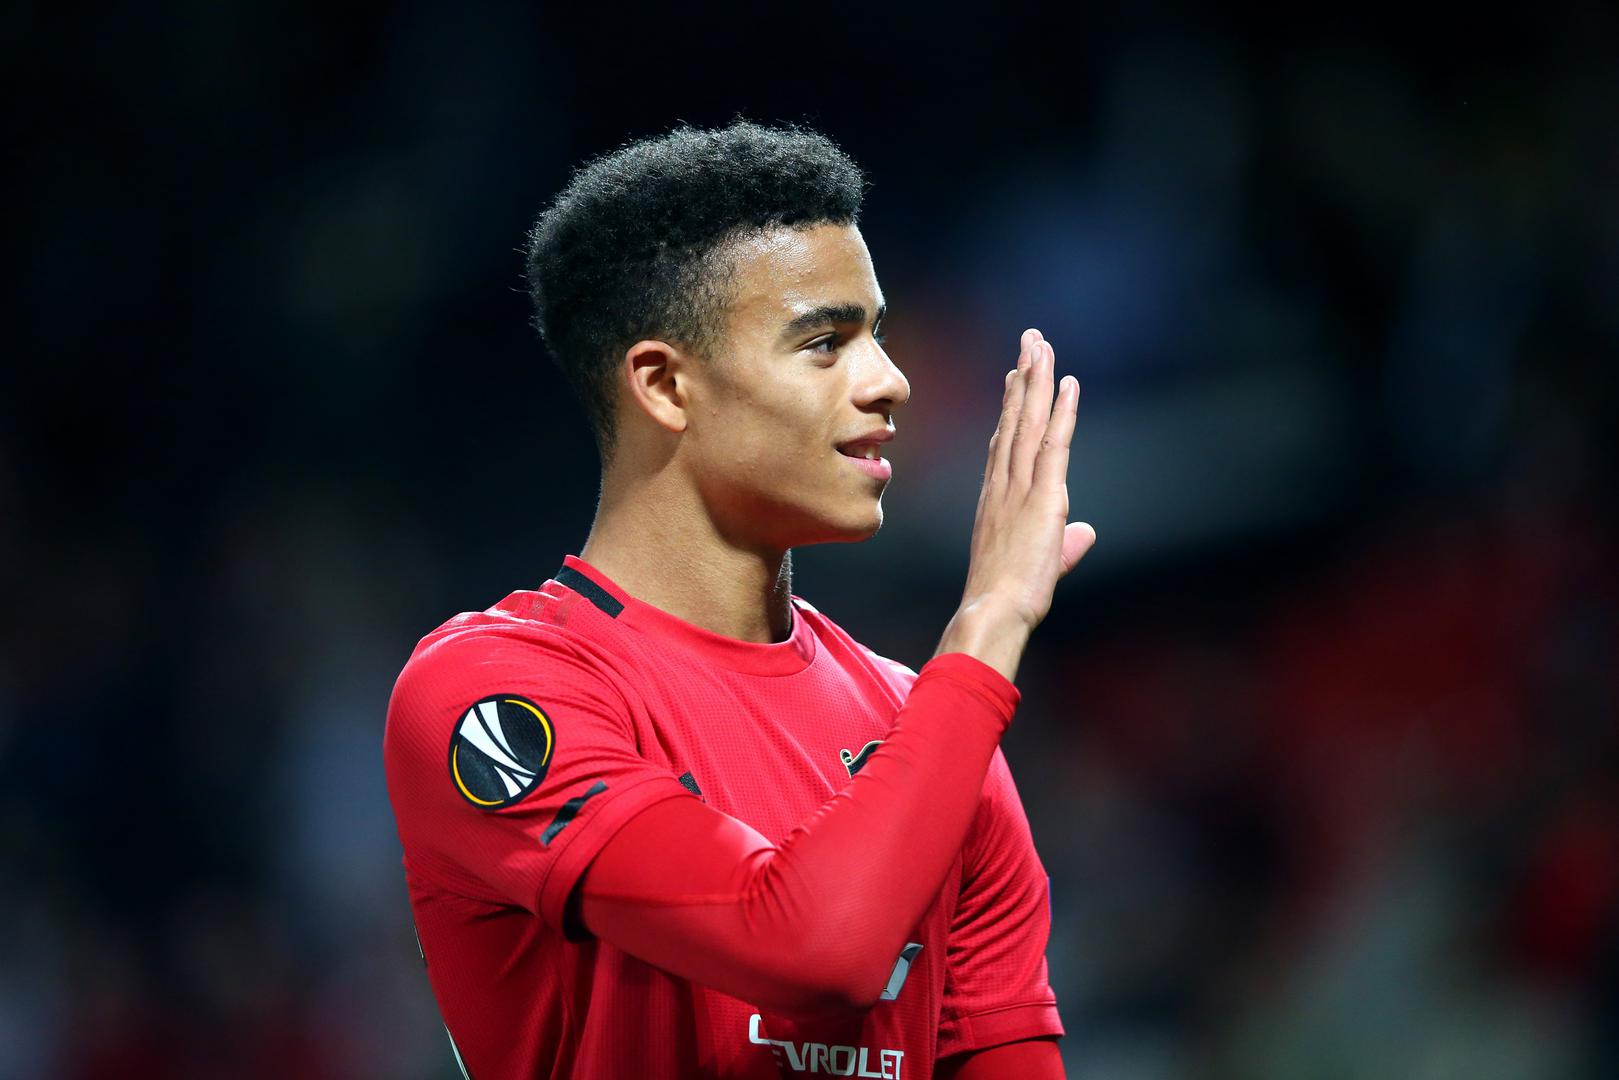 Mason Greenwood waves to the crowd.